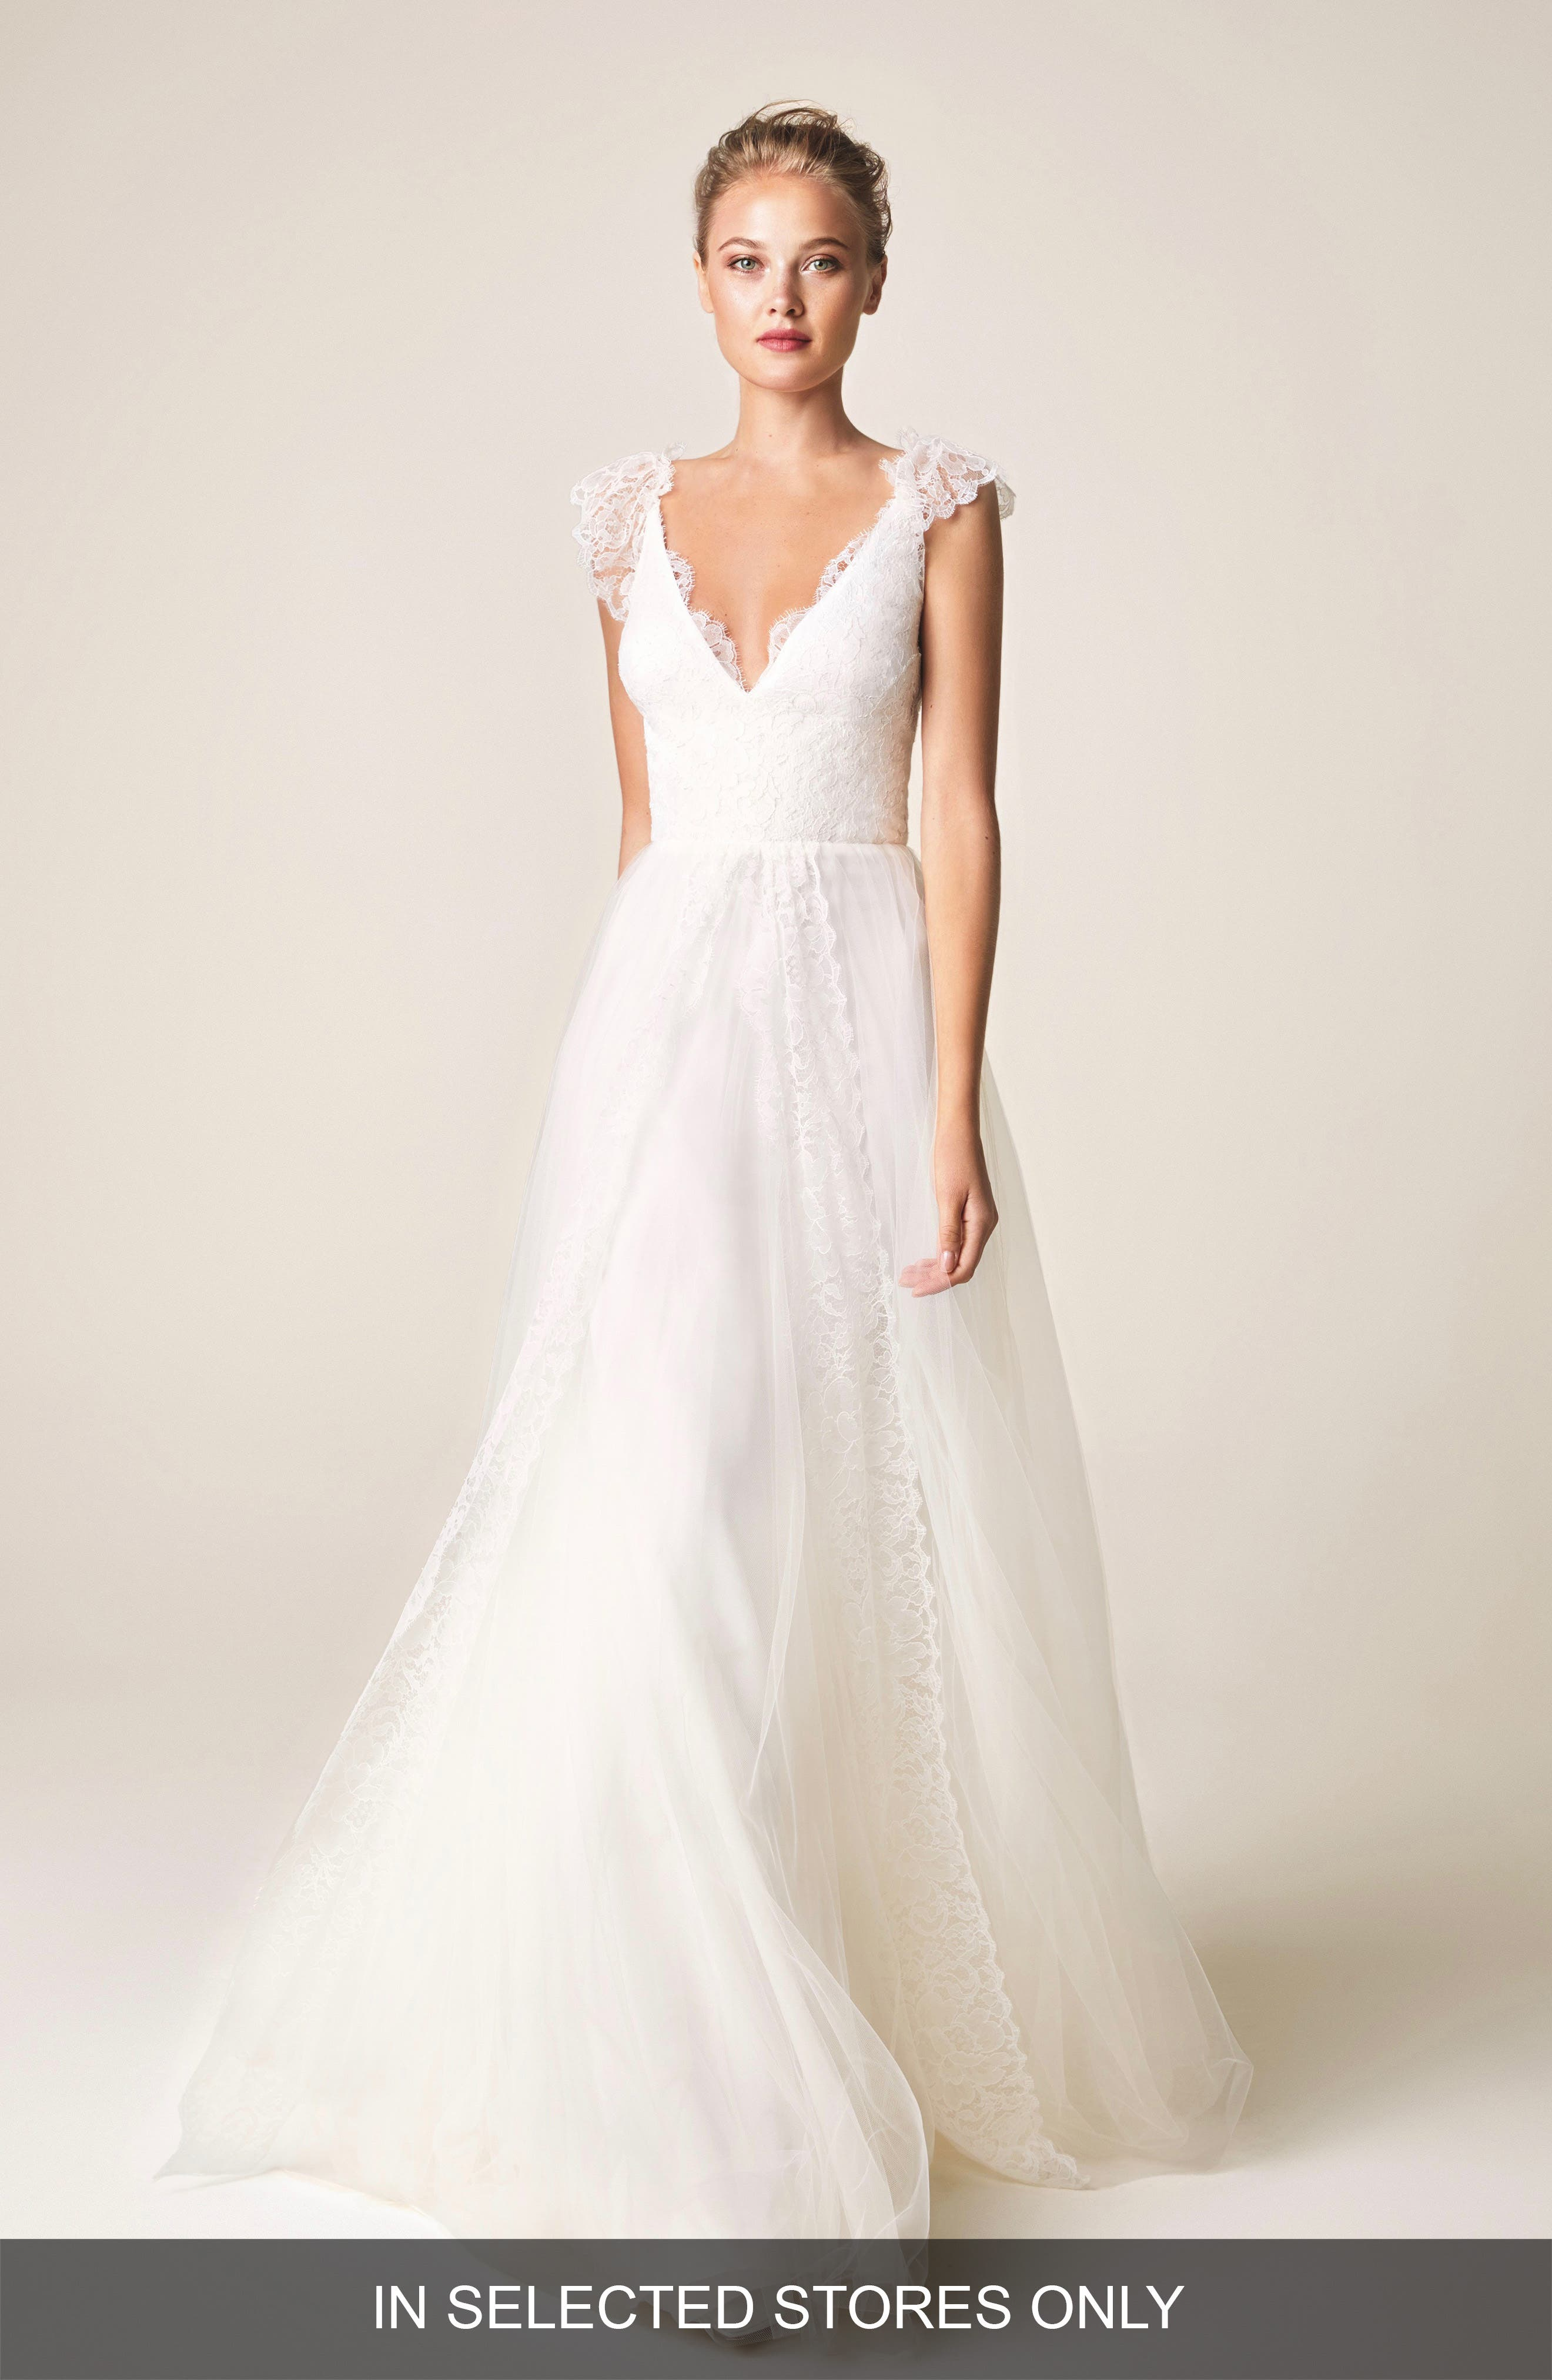 Jesus Peiro V-Neck Cap Sleeve Wedding Dress, Size IN STORE ONLY - Ivory